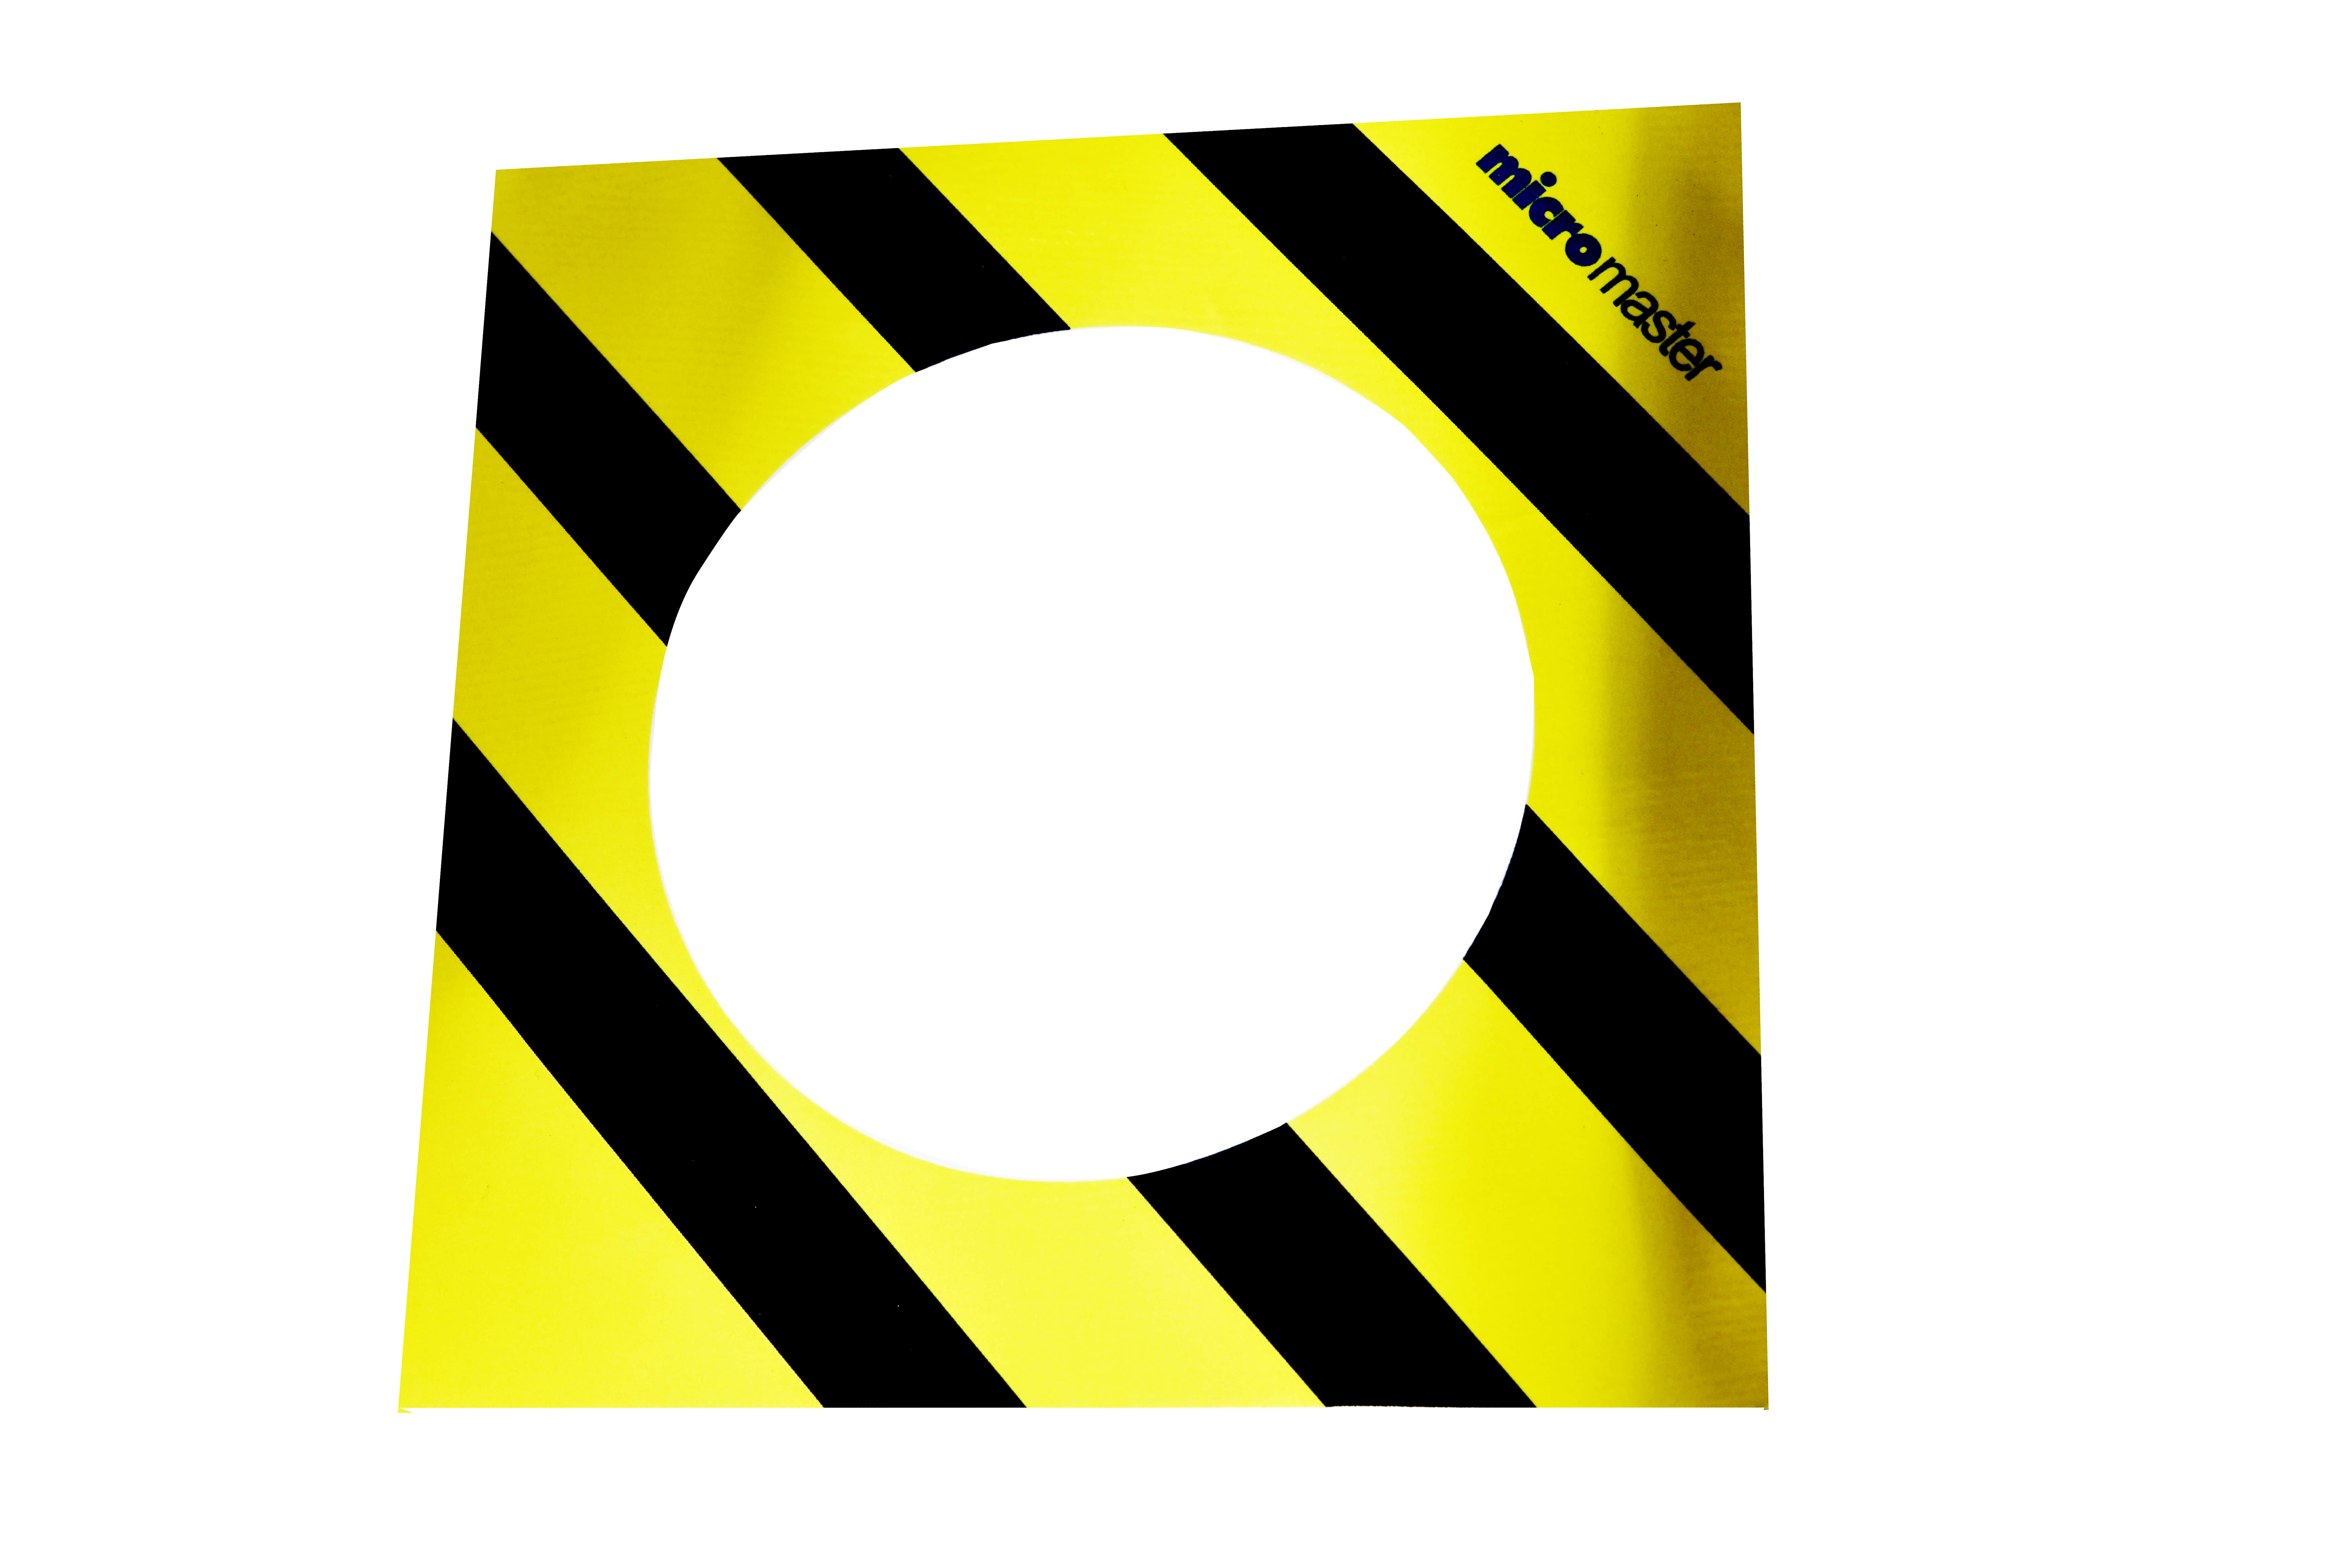 CLEANROOM ENVIRONMENTAL MONITORING LOCATION MARKERS